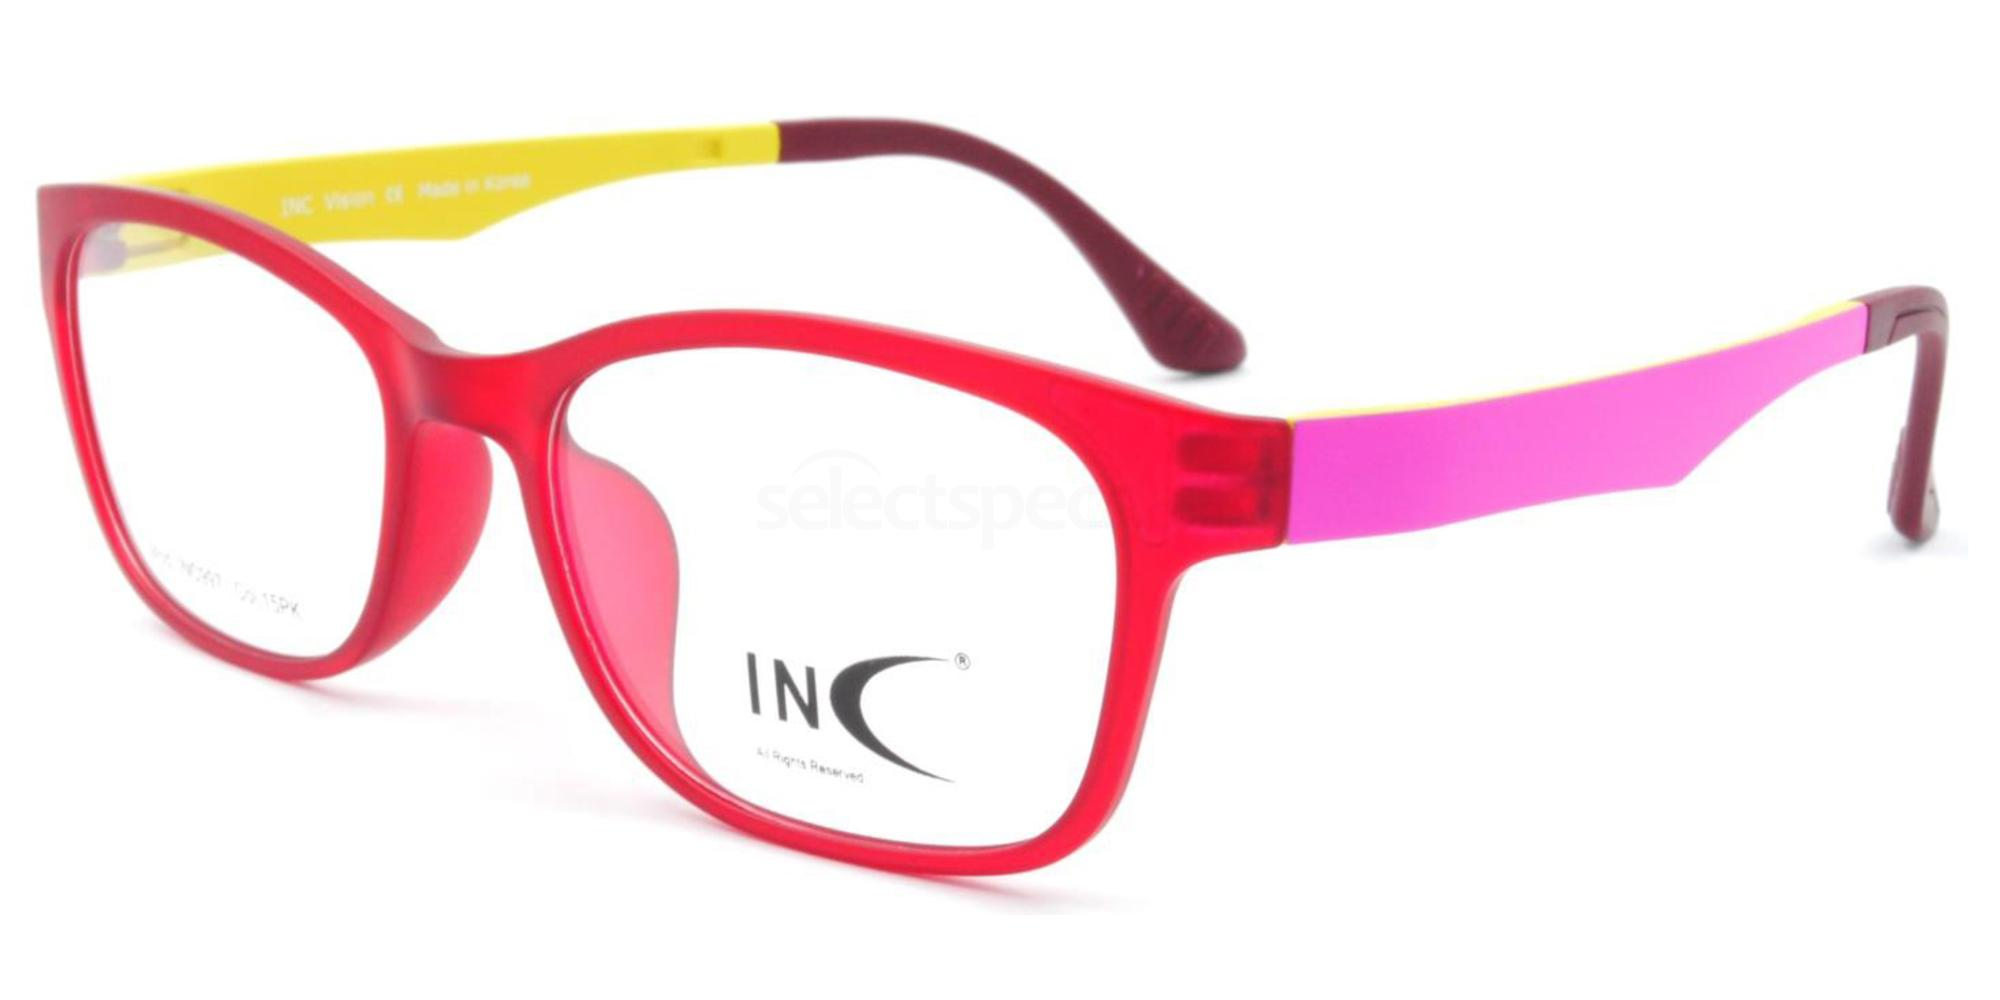 15PK INC 997 Glasses, INC Vision